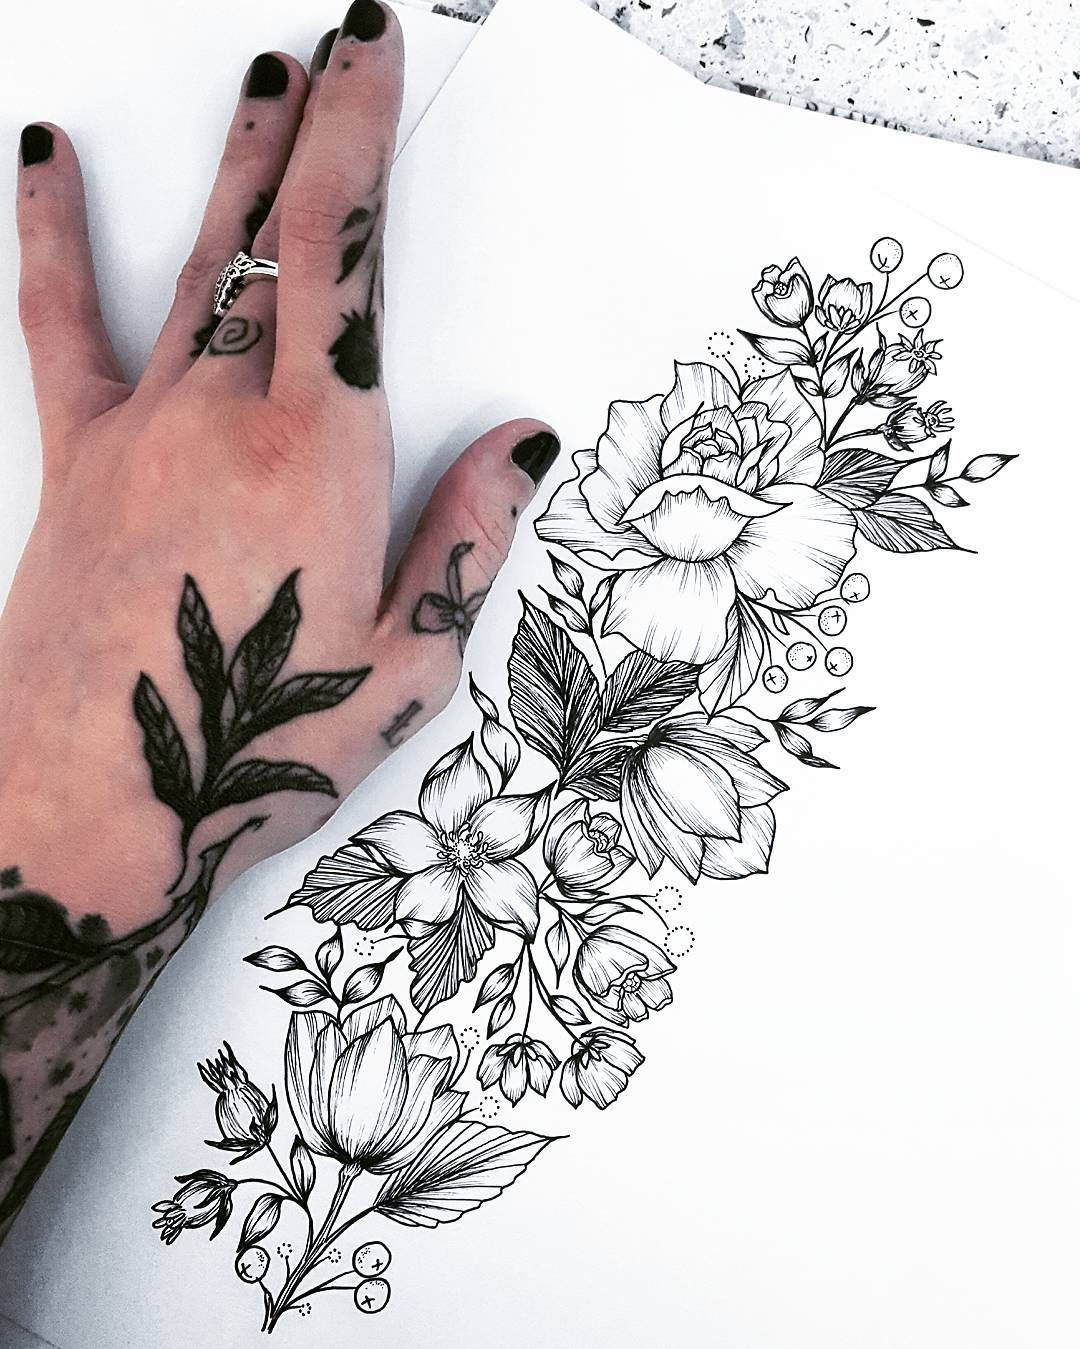 Maggy Biersack Floral Tattoo Sleeve Floral Illustration Tattoo Botanical Tattoo Design